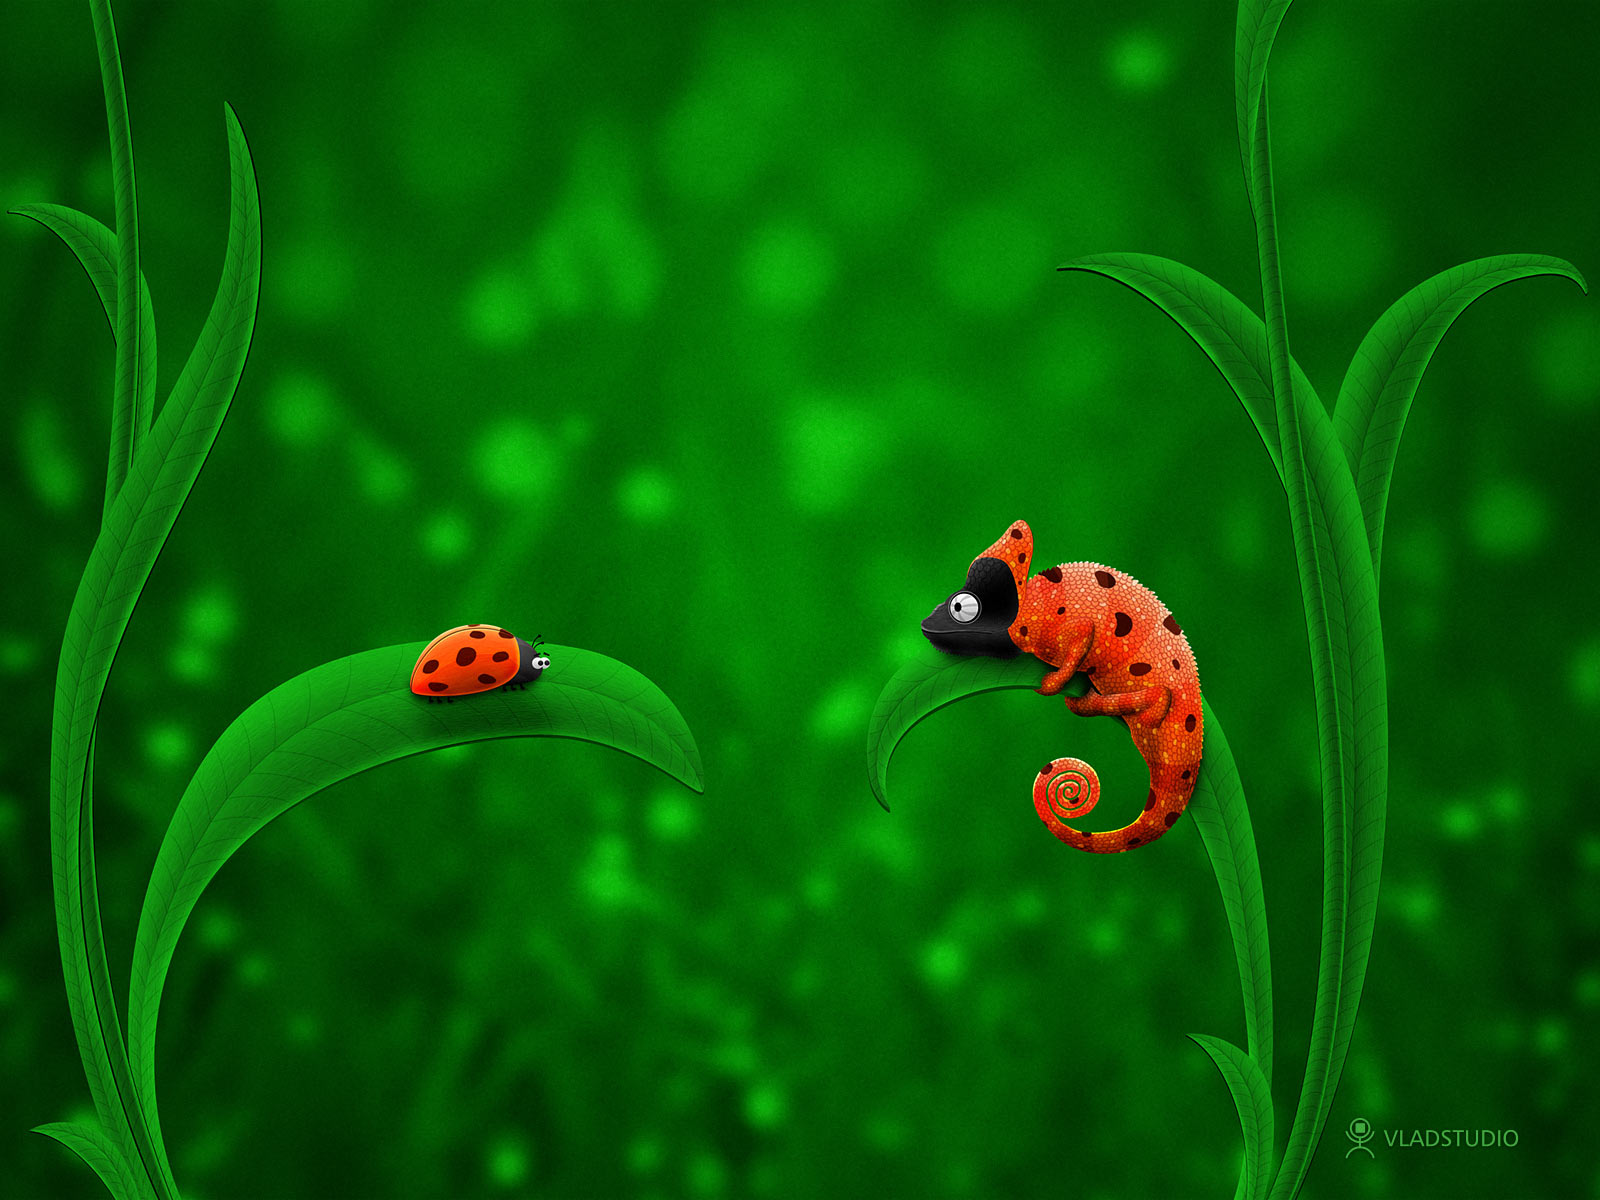 Ladybug and Chameleon by vladstudio